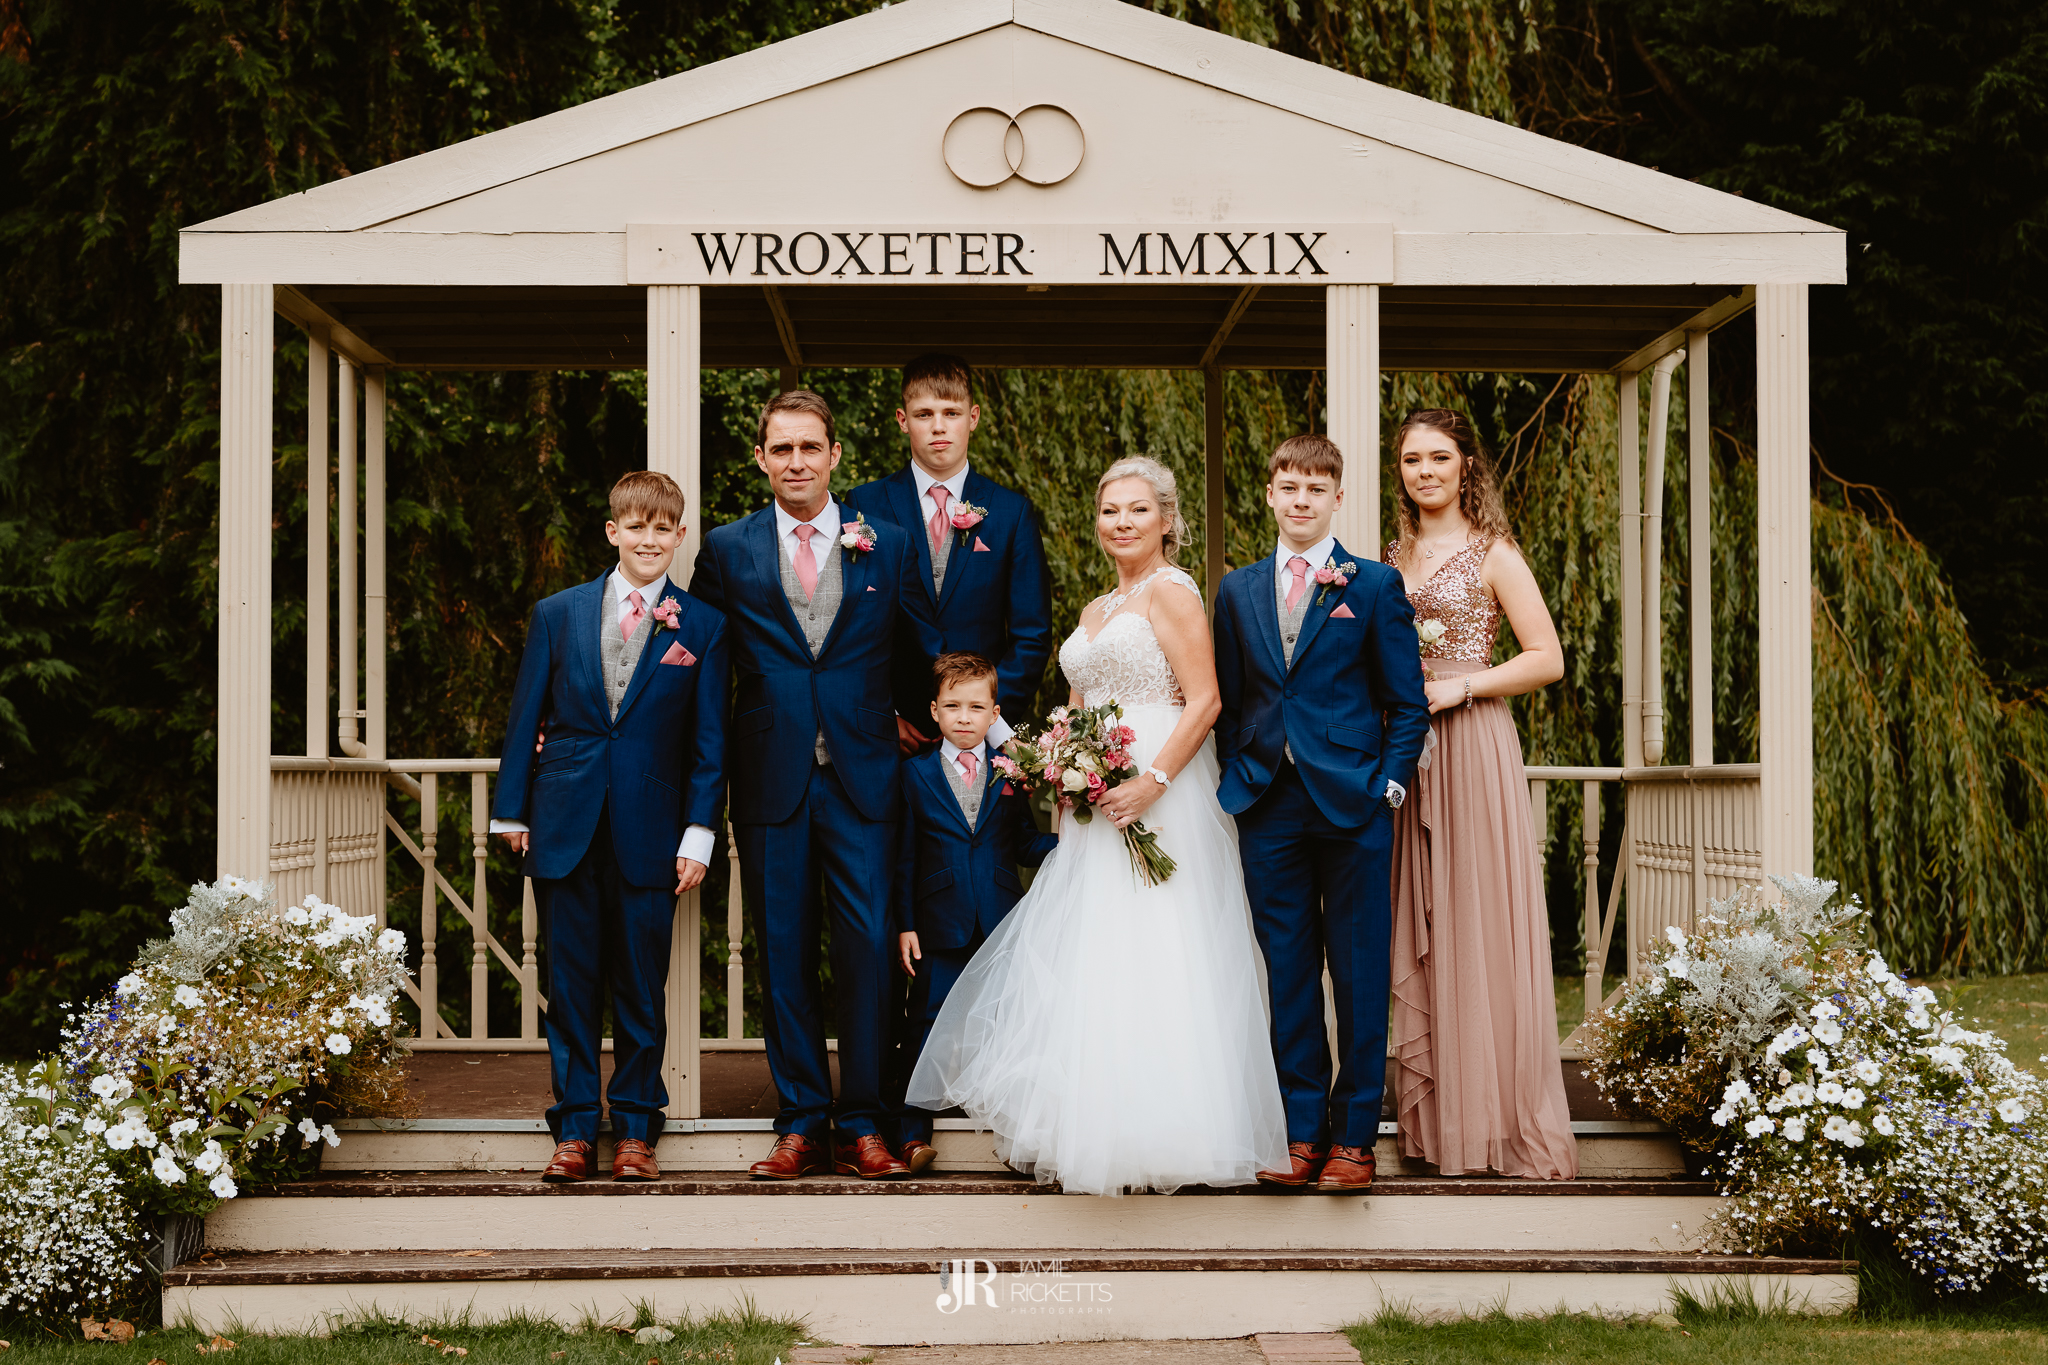 Wroxeter-Hotel-Wedding-Photography-In-Shropshire-By-Shropshire-Wedding-Photographer-Jamie-Ricketts-097.JPG